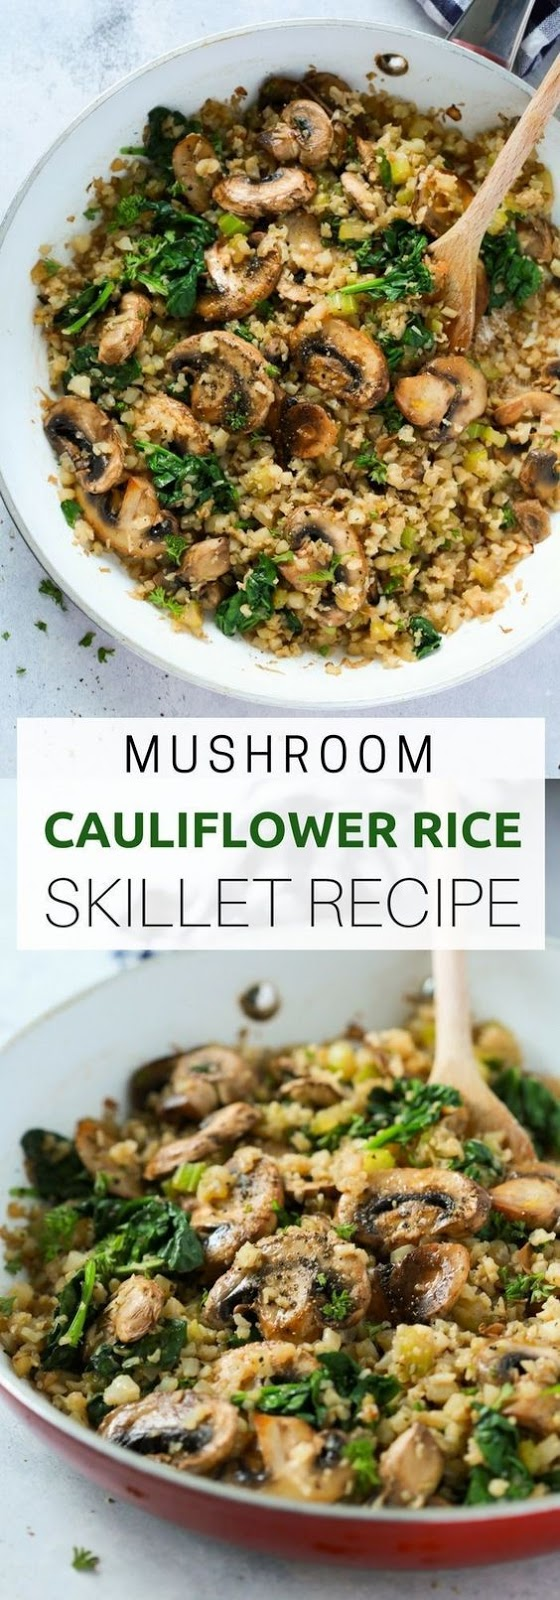 Mushroom Cauliflower Rice Skillet Recipe #mushroom #cauliflower #rice #skillet #healthyfood #healthyrecipes